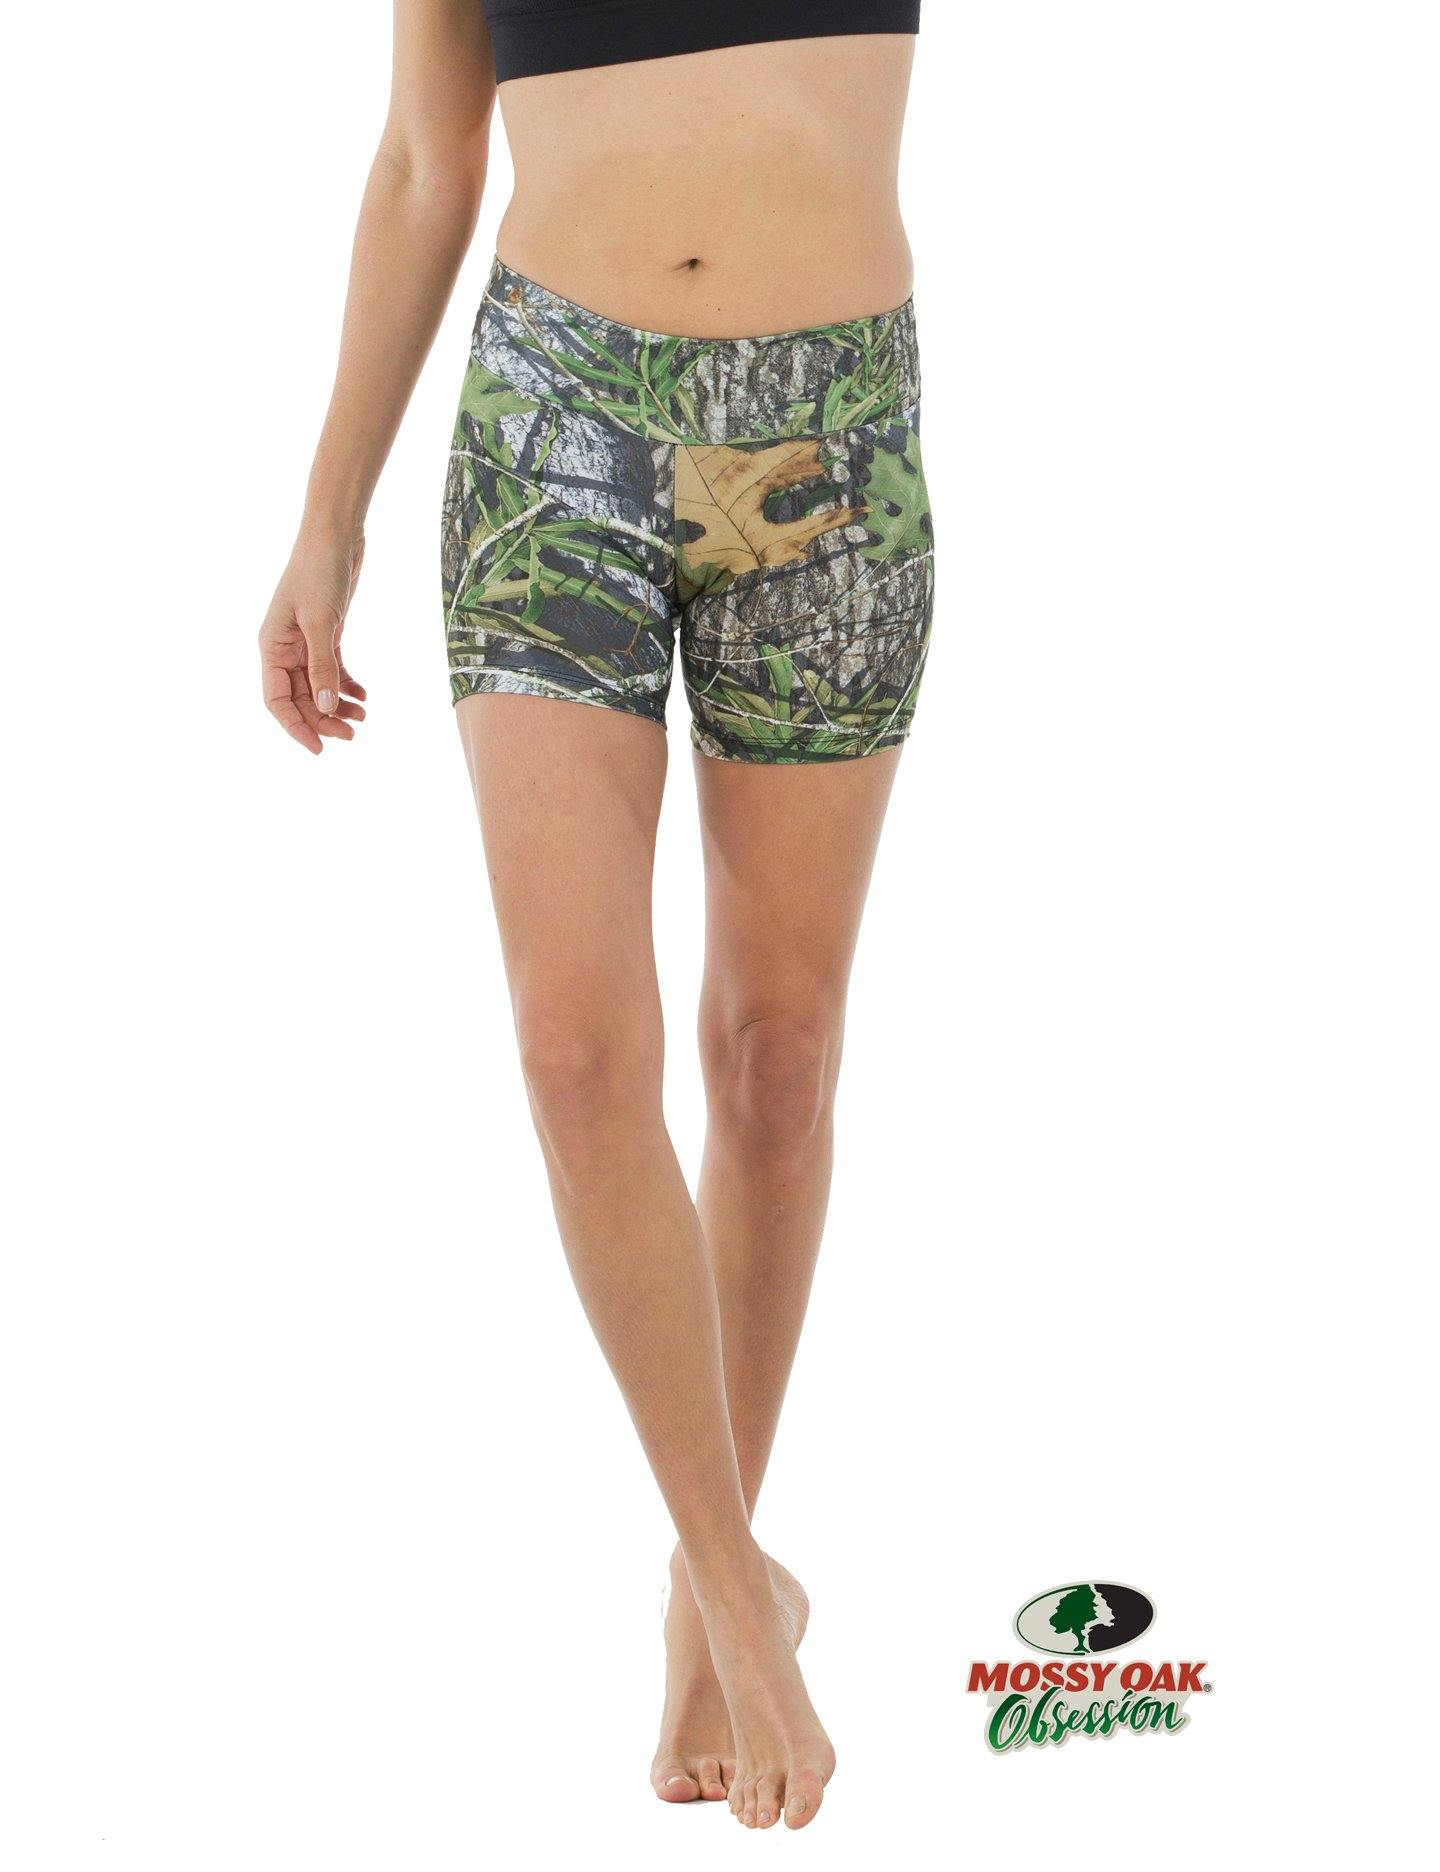 Apsara Shorts Low Waist, Mossy Oak Obsession